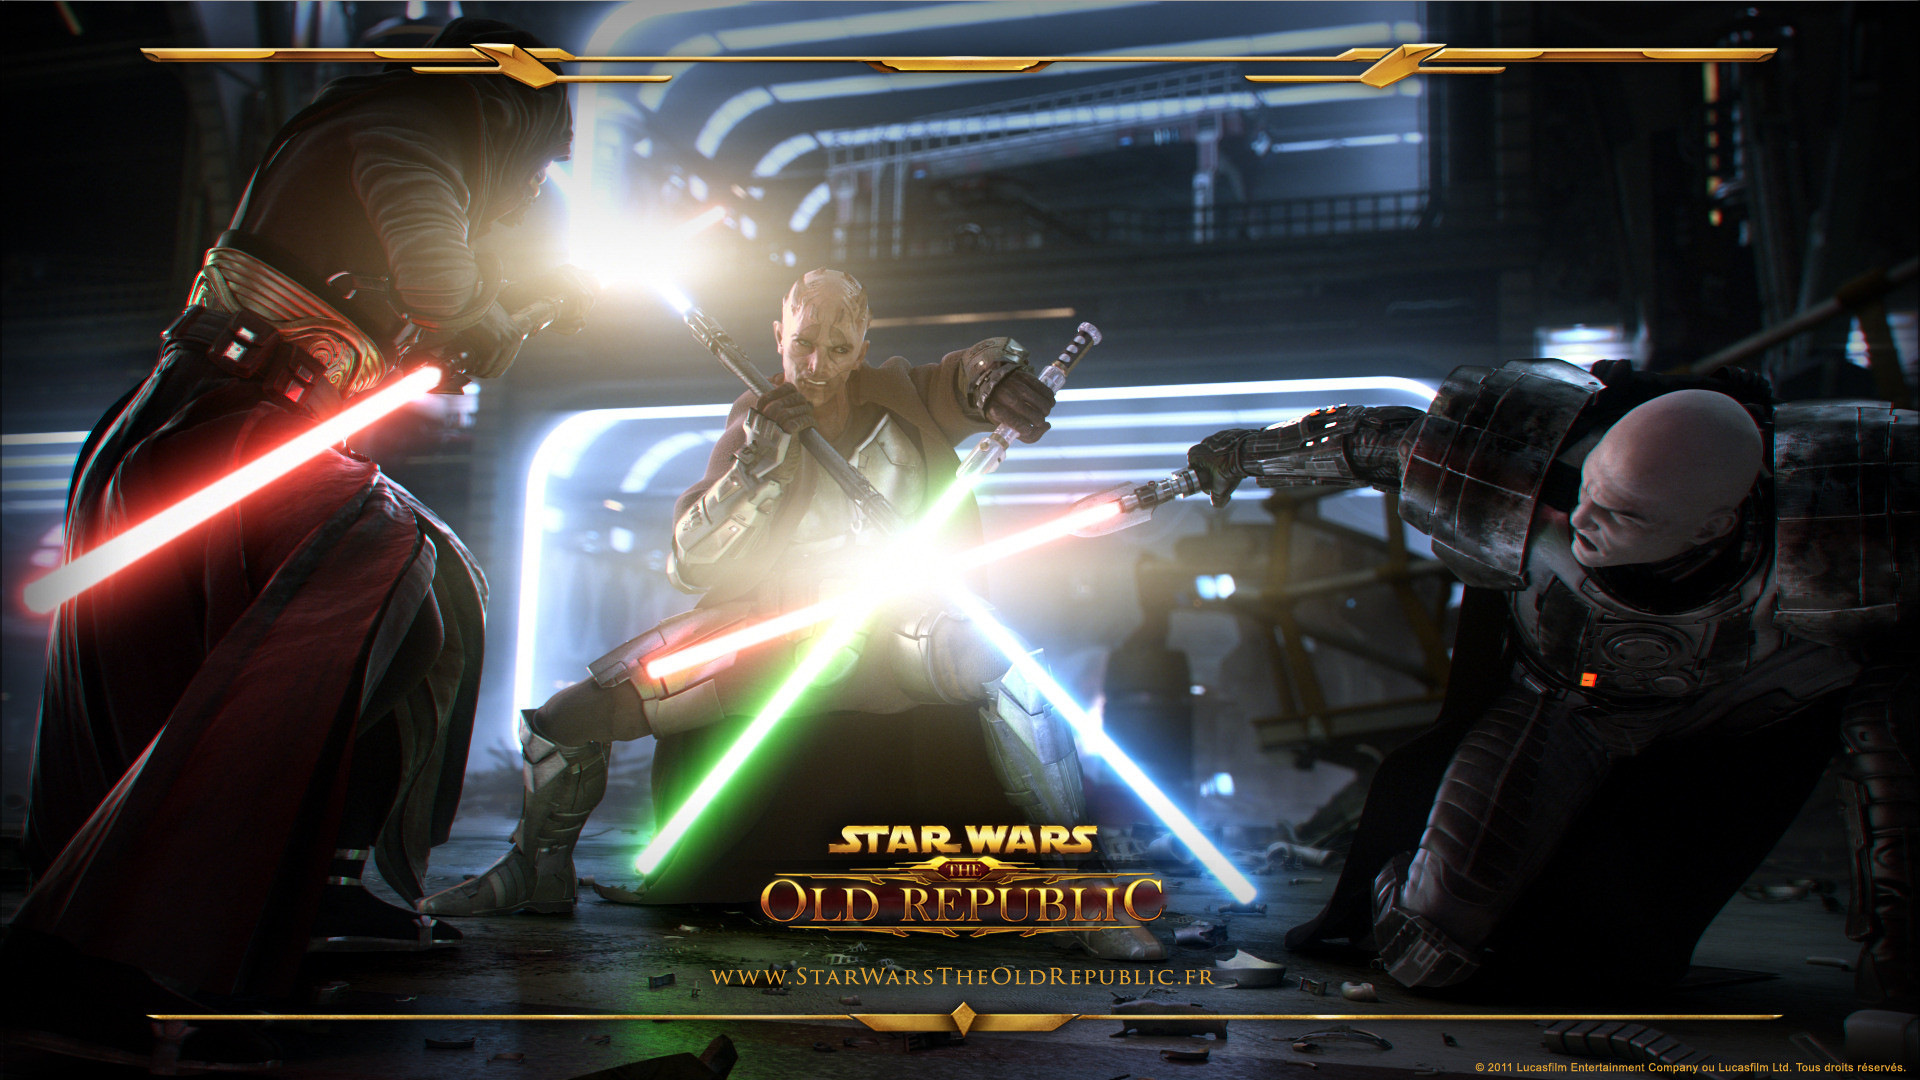 1920x1080 ... star wars the old republic e combat hd desktop wallpaper; swtor  wallpaper  wallpapersafari ...